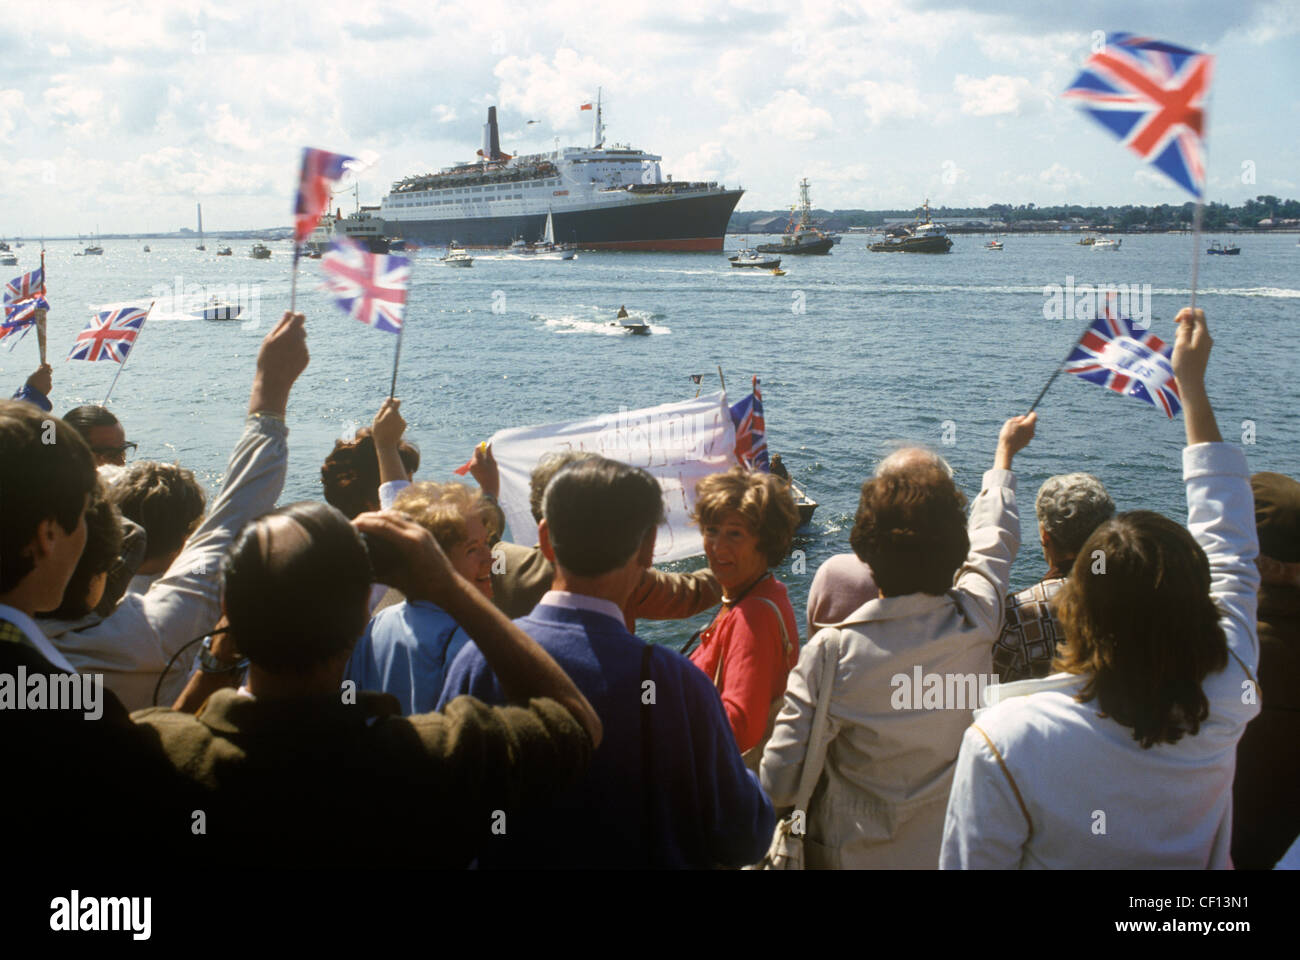 Queen Elizabeth 2 QE2 returning to Southampton from the Falklands War as a Troop Carriers. June 1982 HOMER SYKES - Stock Image